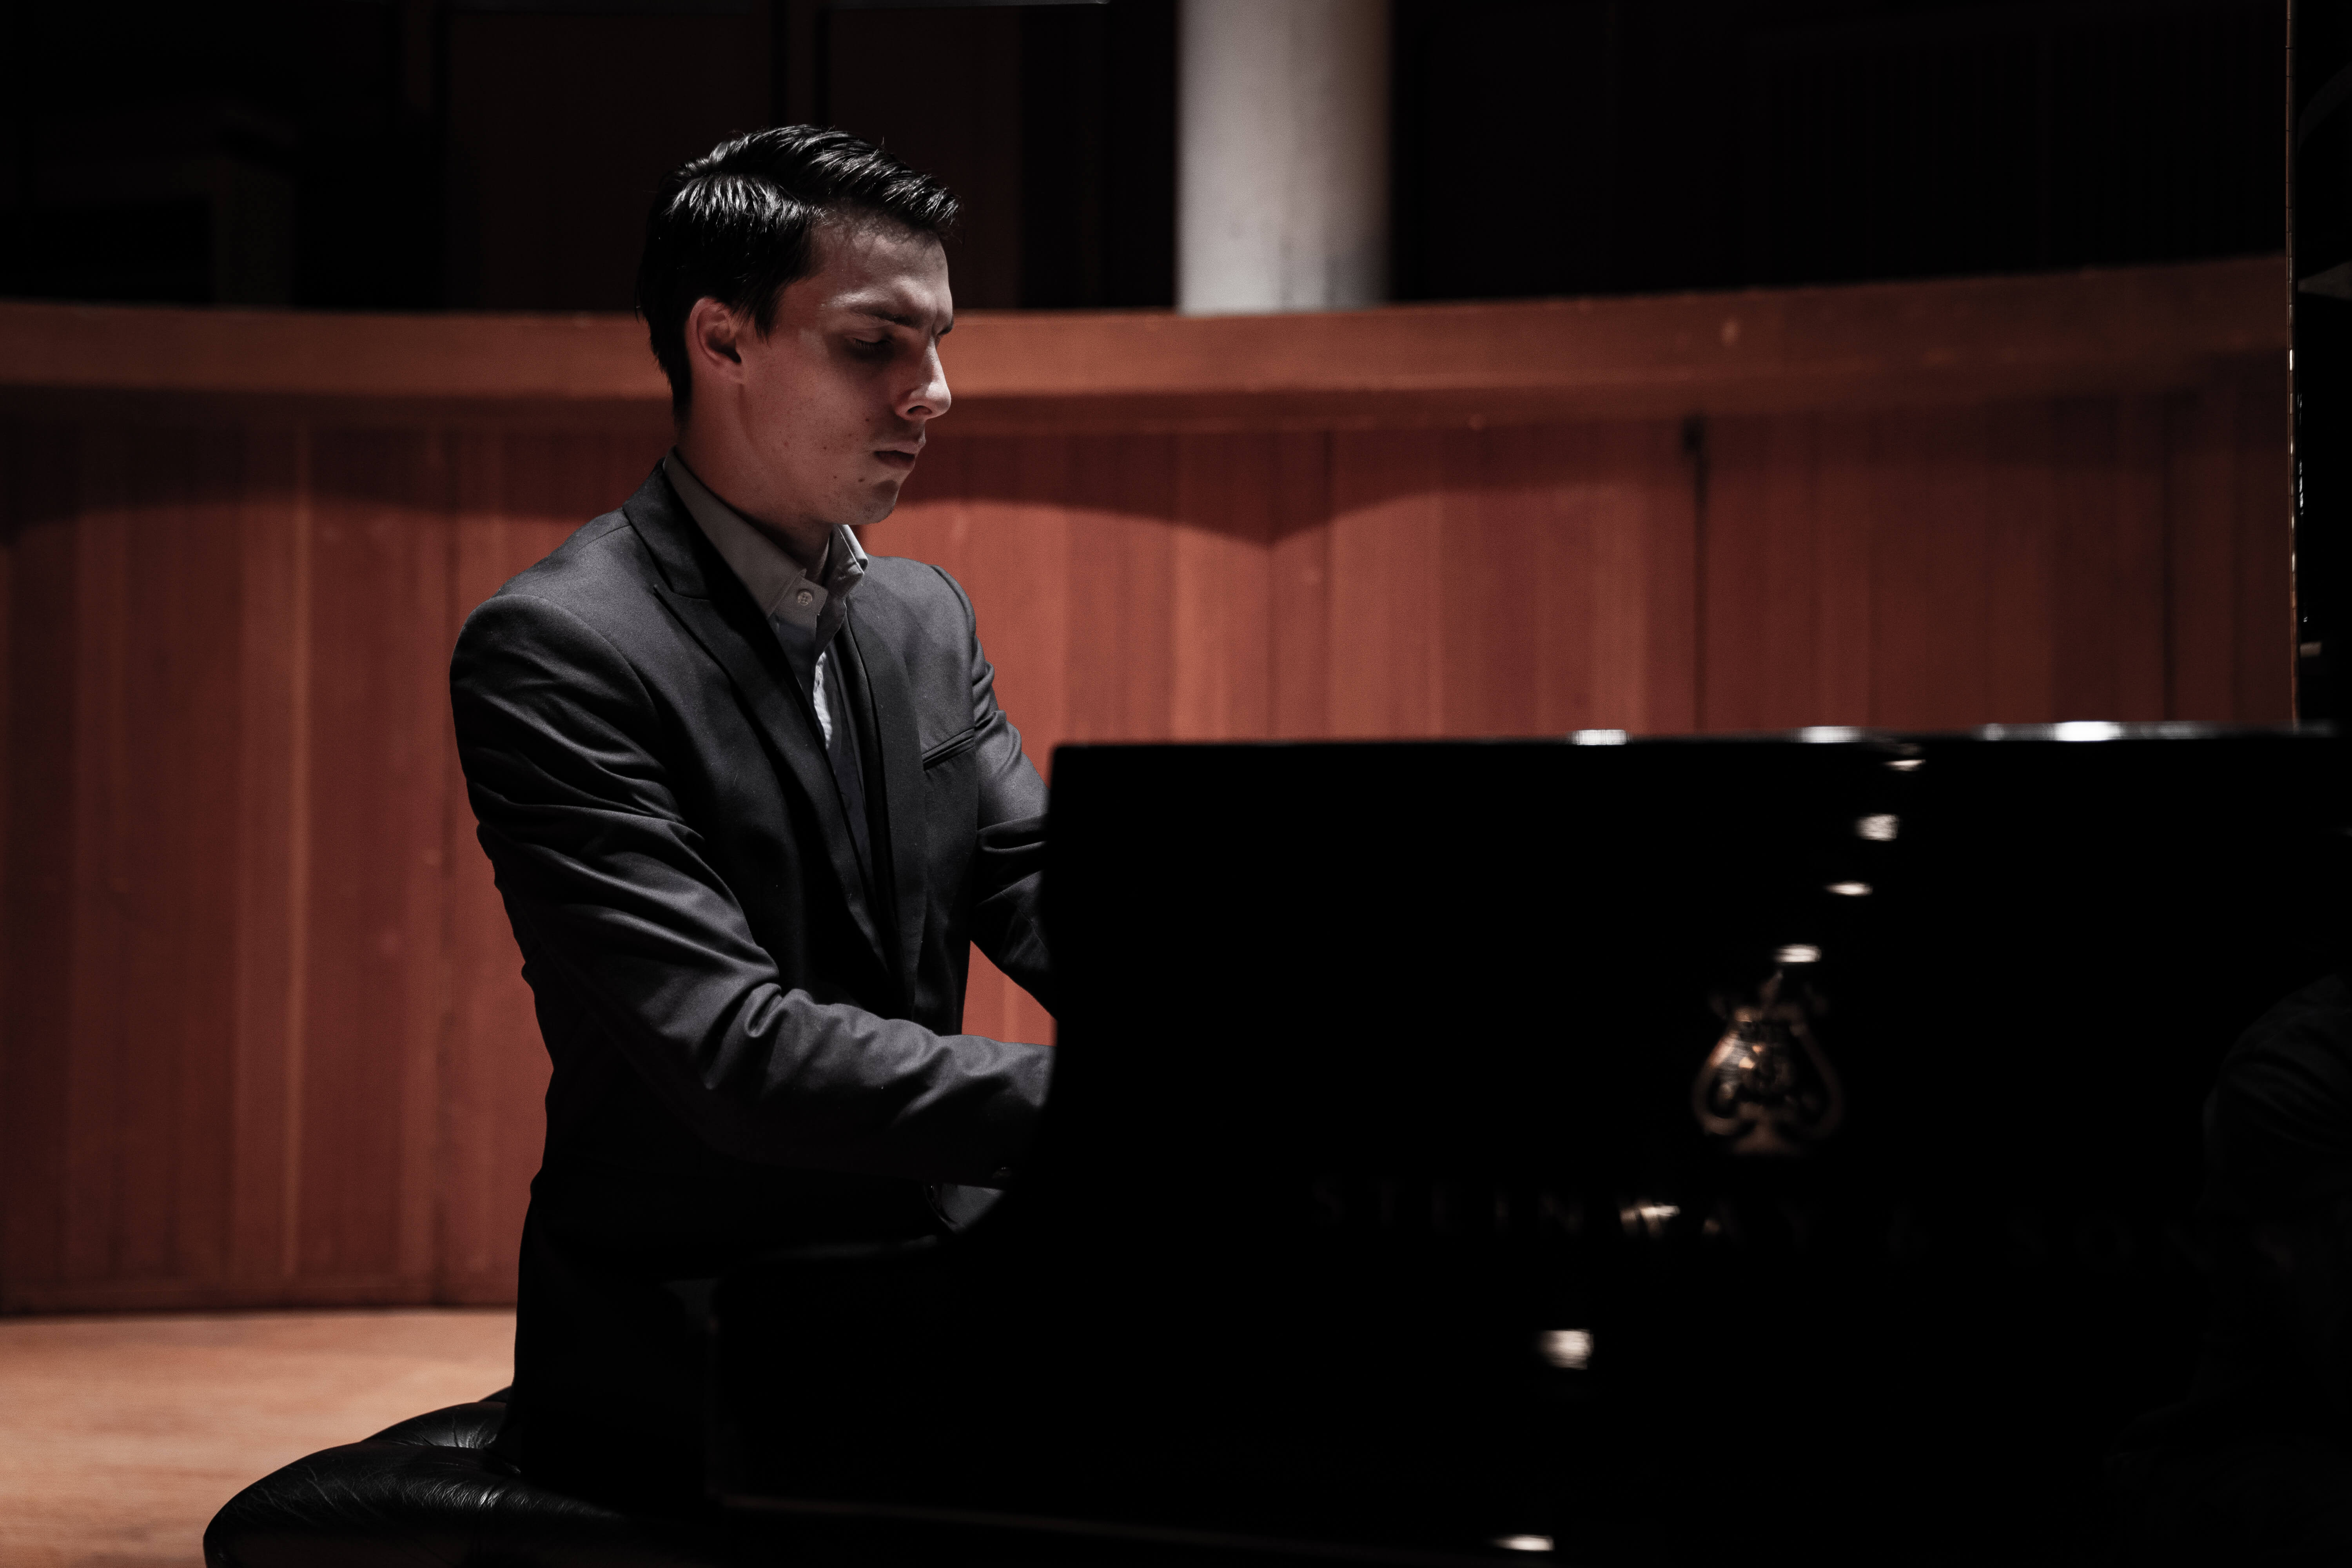 Pianist Liam Pitcher playing a grand piano in a wooden concert hall.